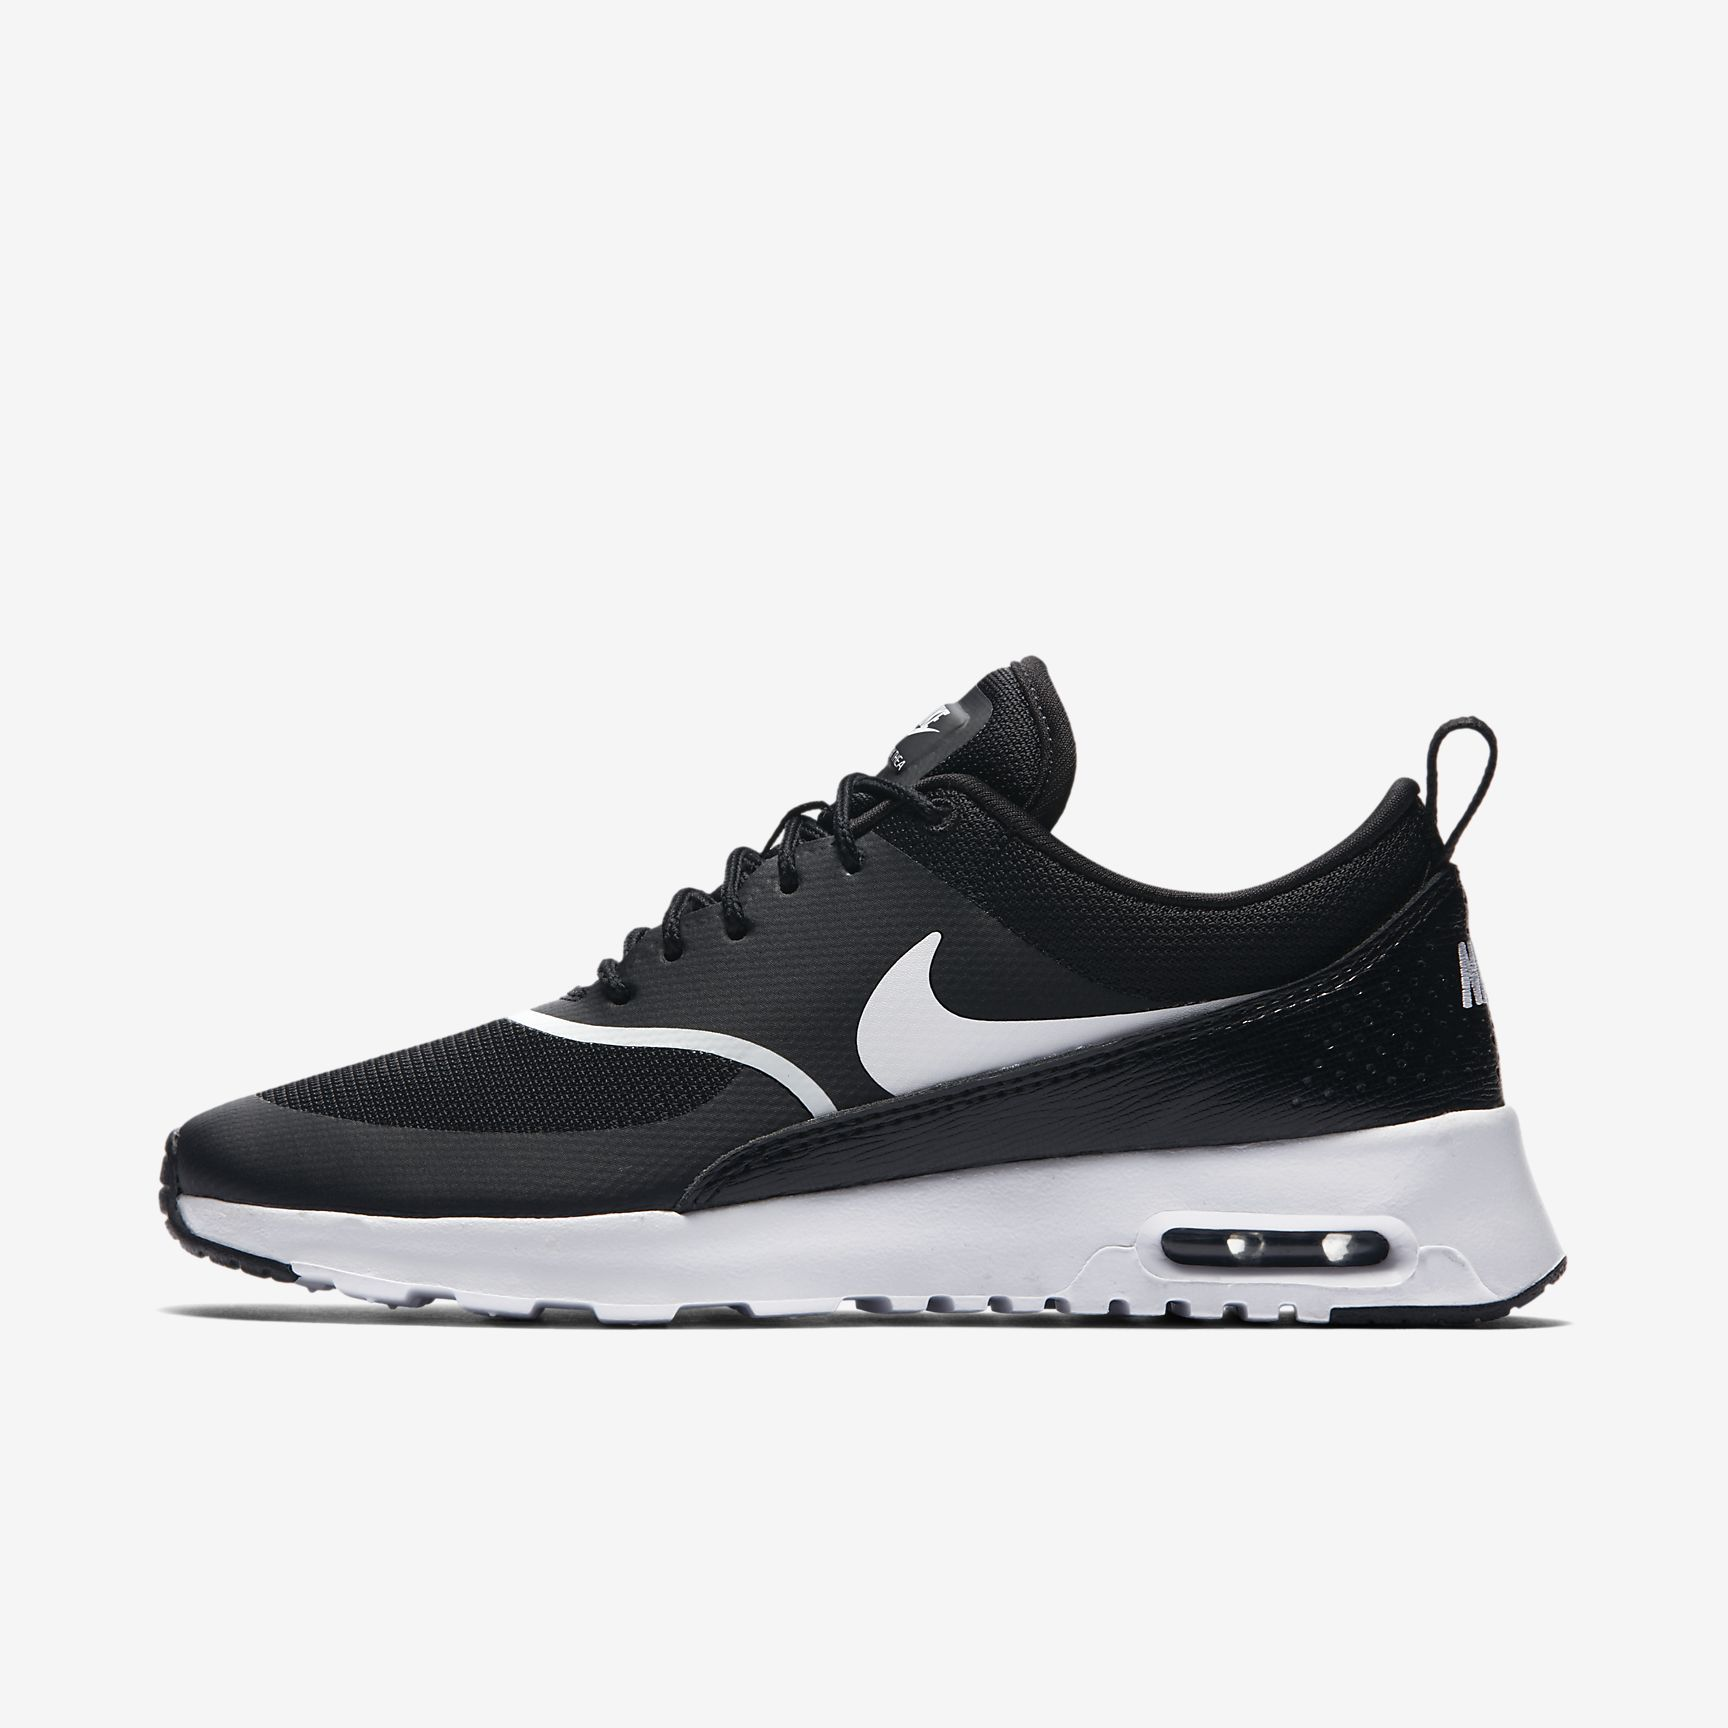 Sko Nike Air Max Thea för kvinnor | wishlist | Air max thea